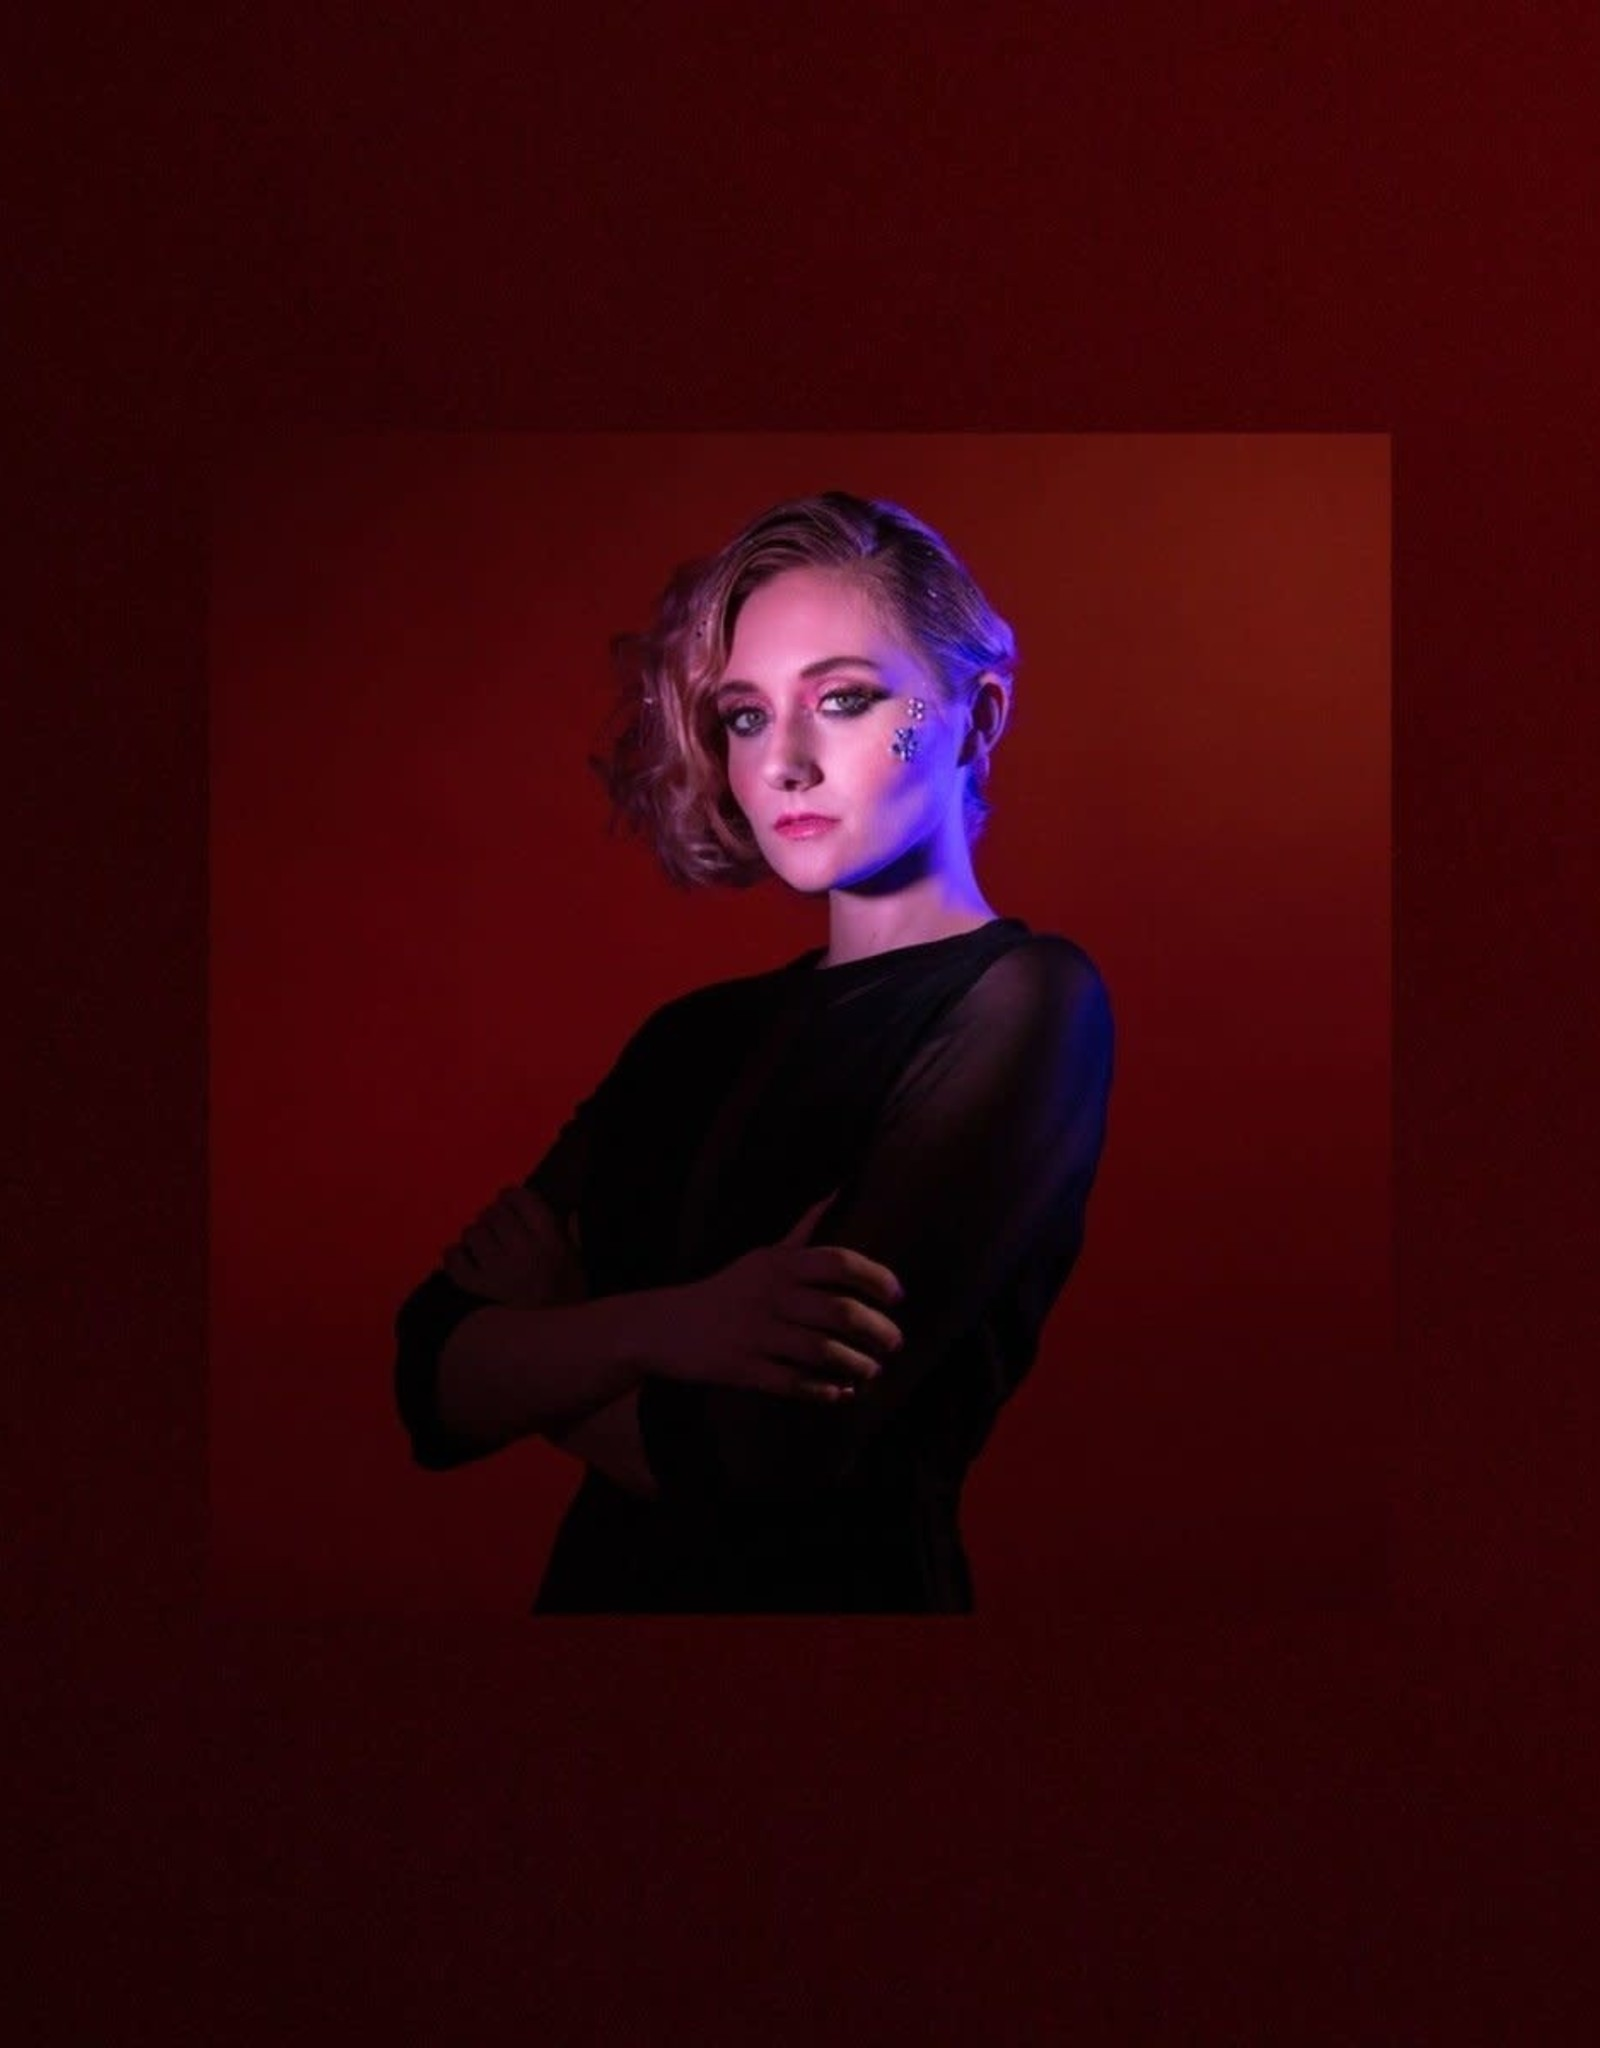 Jessica Lea Mayfield - Sorry Is Gone - Lp